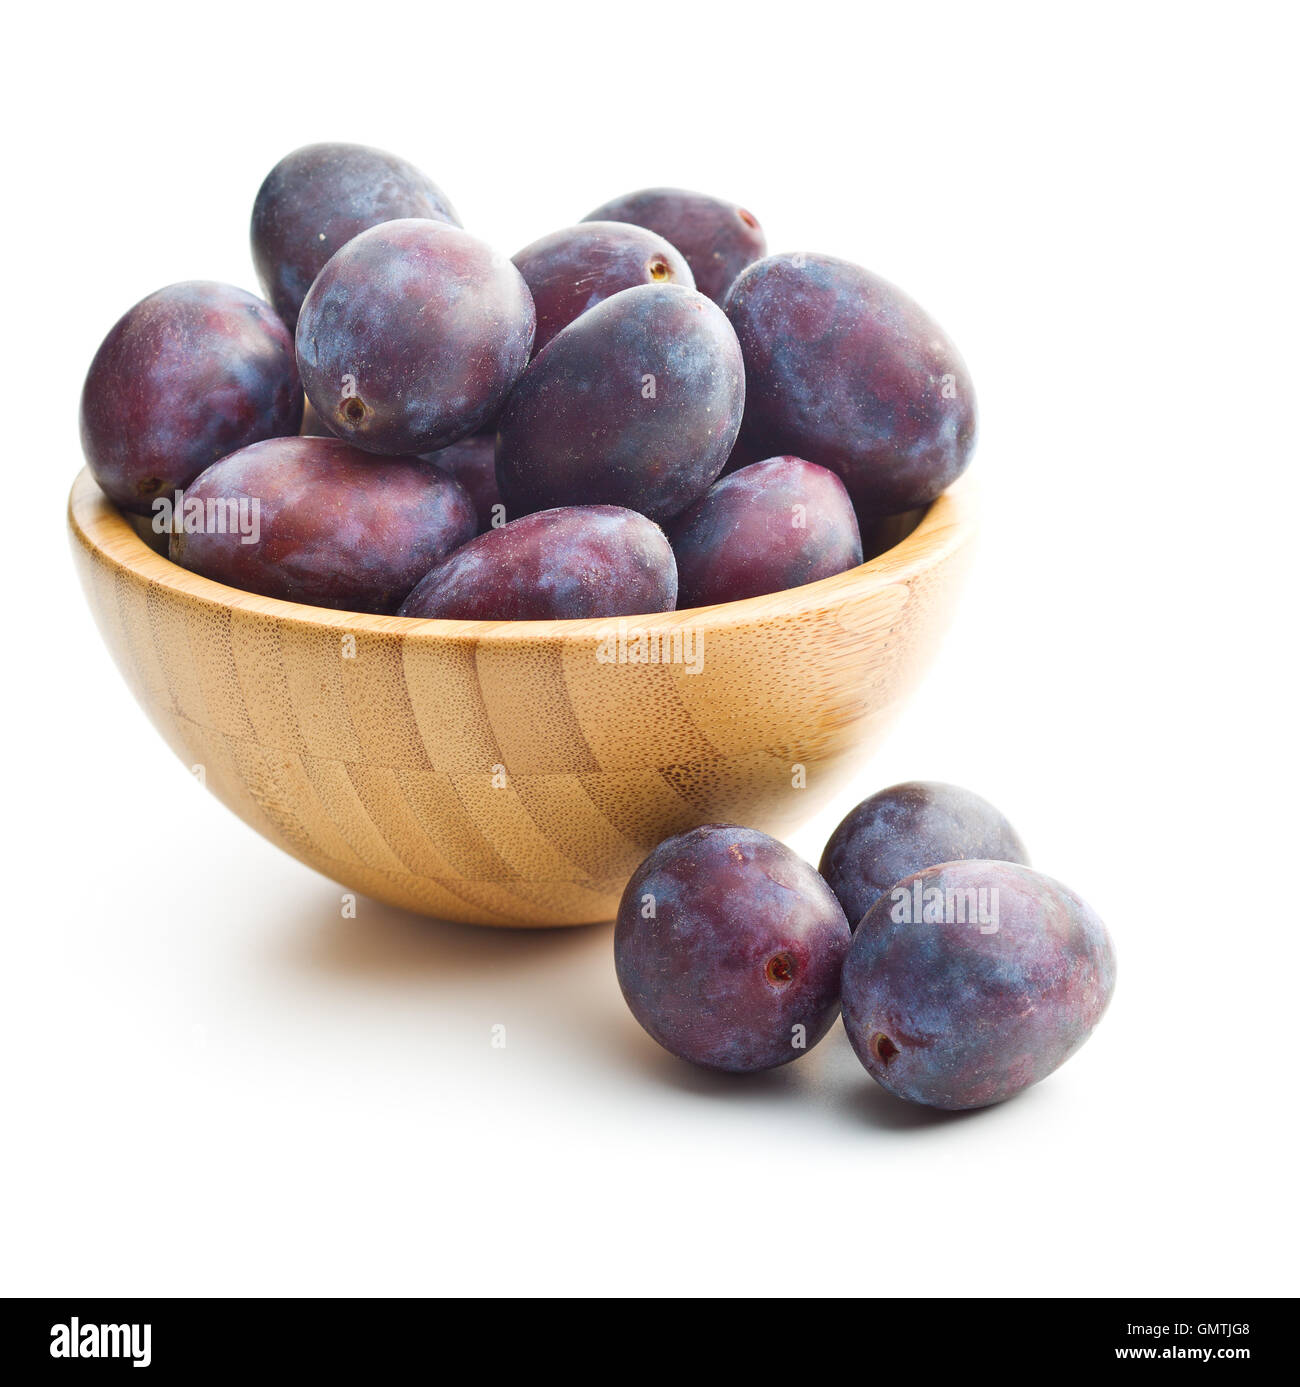 Fresh plums from garden in wooden bowl isolated on white background. - Stock Image